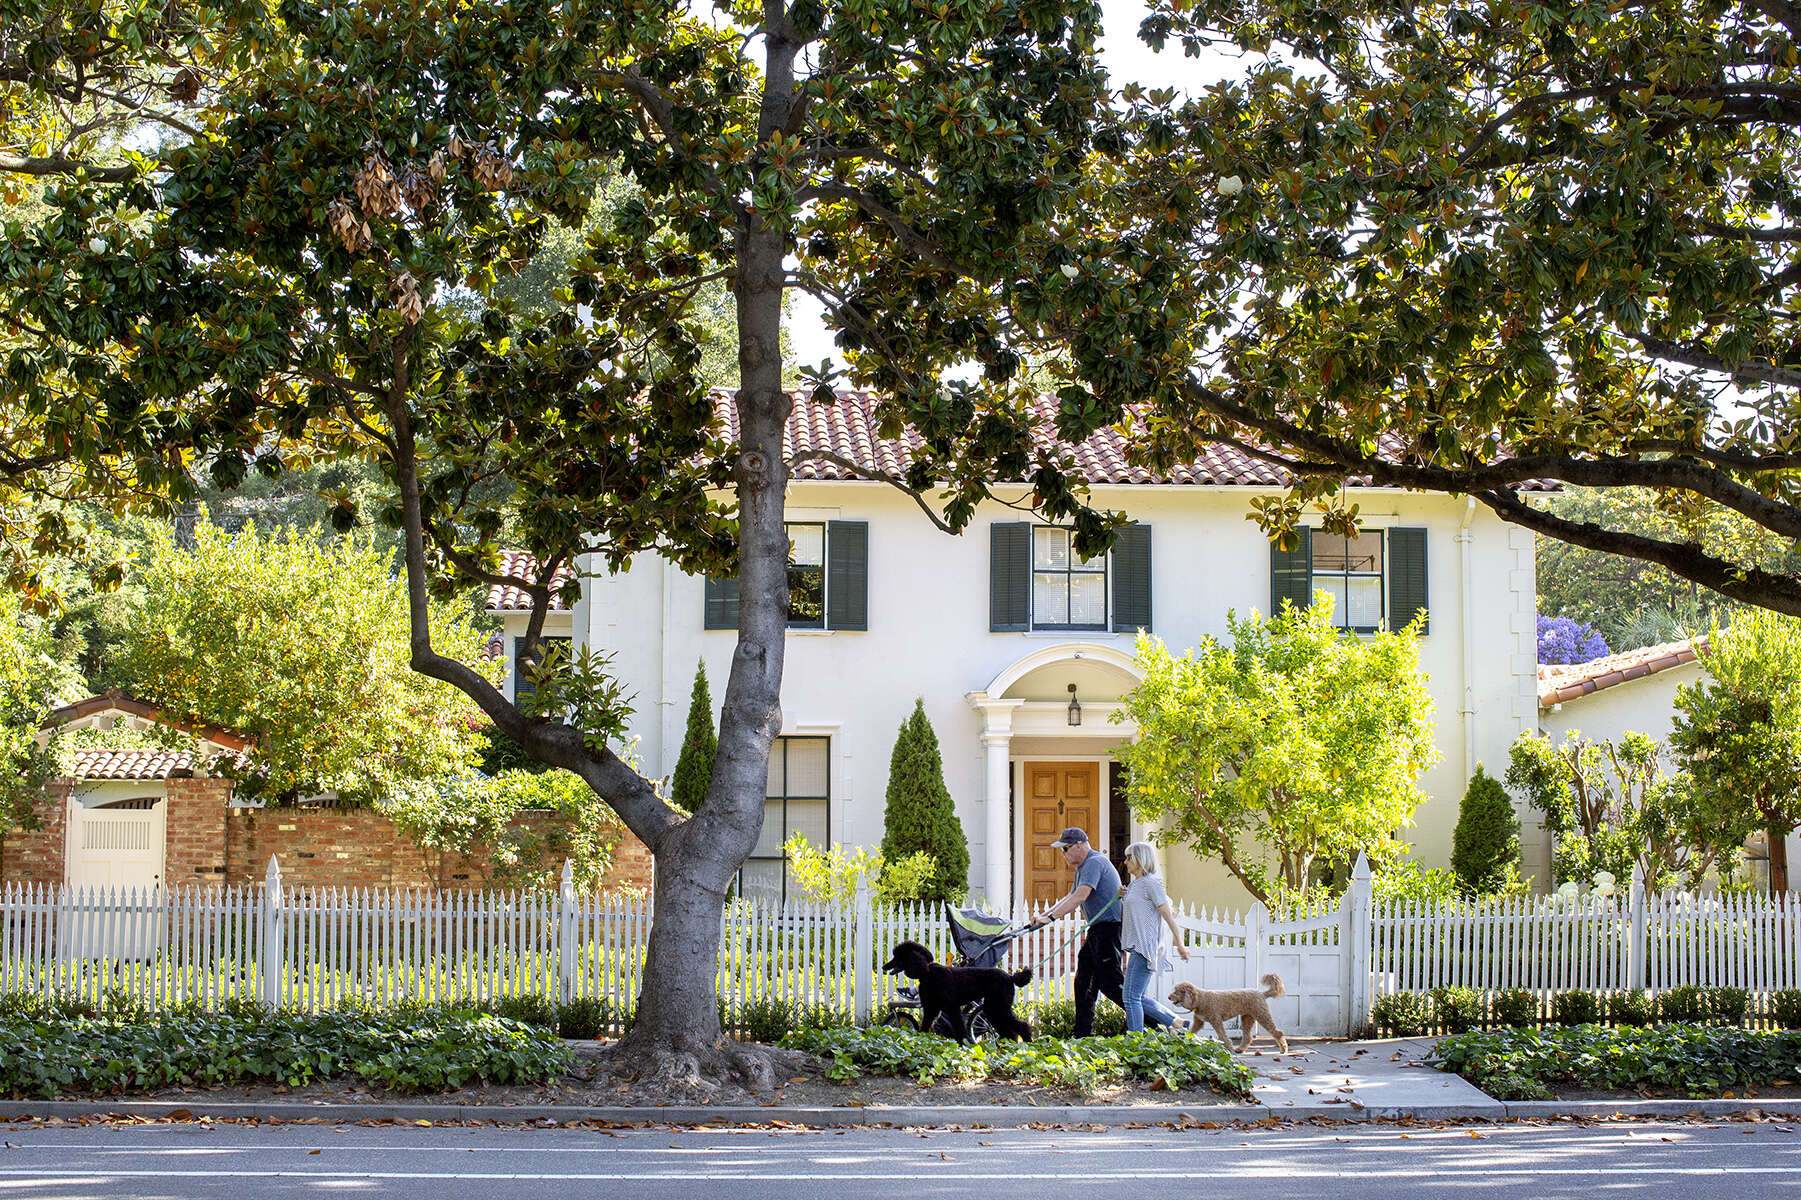 Pedestrians and their dogs walk by a house on the 1200 block of University Avenue in Palo Alto, Calif., on June 23, 2019. The medium home value in the city is an estimated $2,775,164 according to the real estate company Zillow.